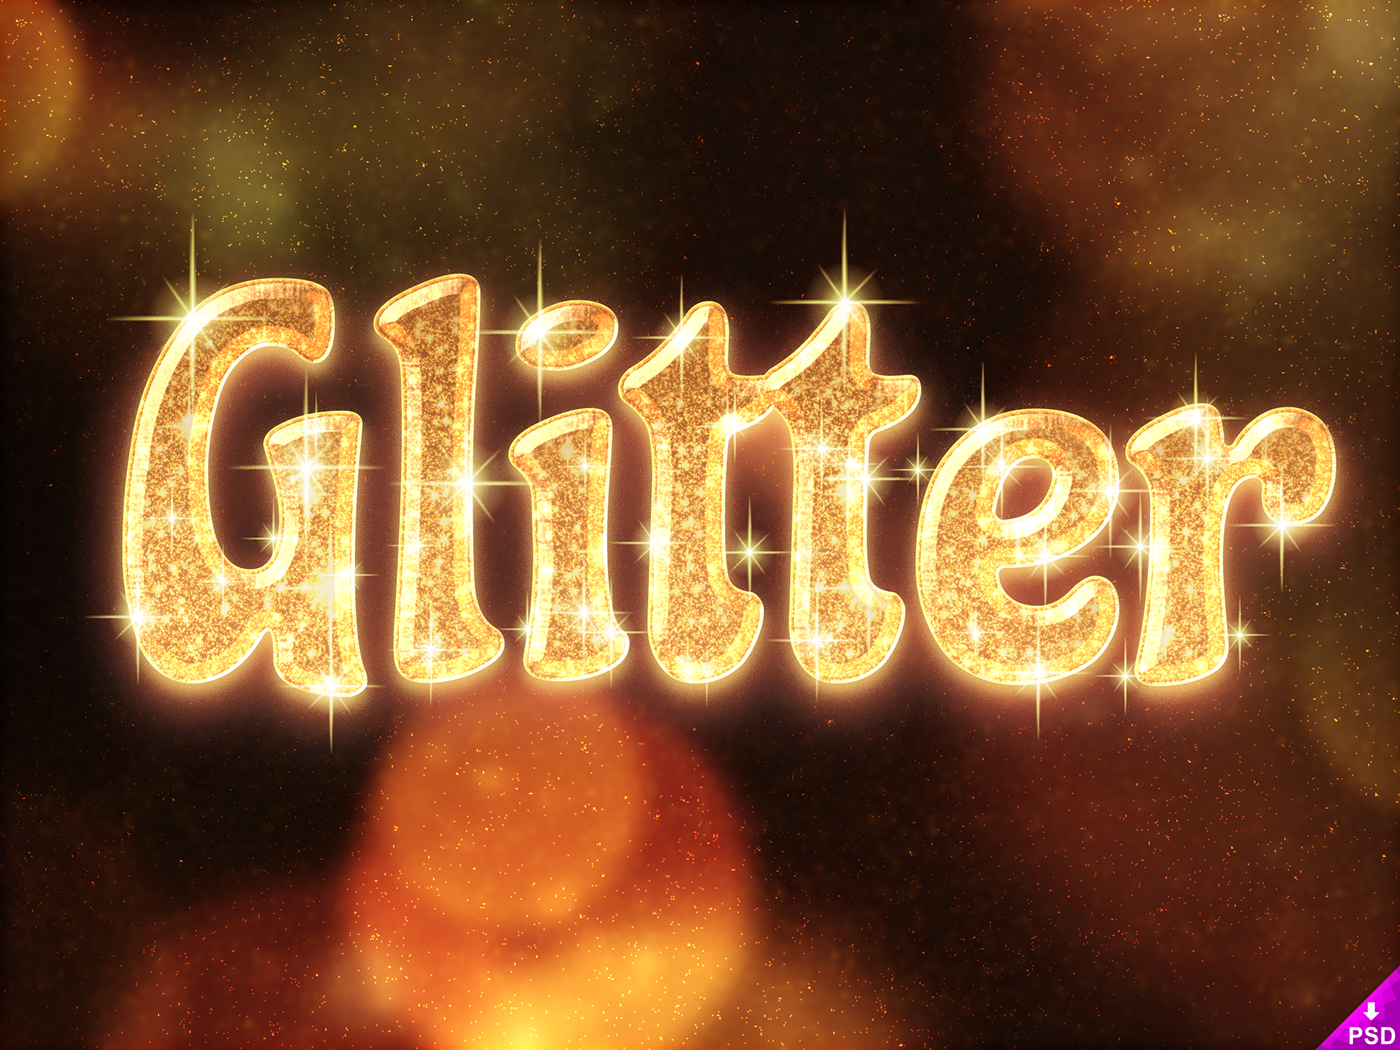 Glitter,gold,sparkle,special,holidays,light,layer,Style,text